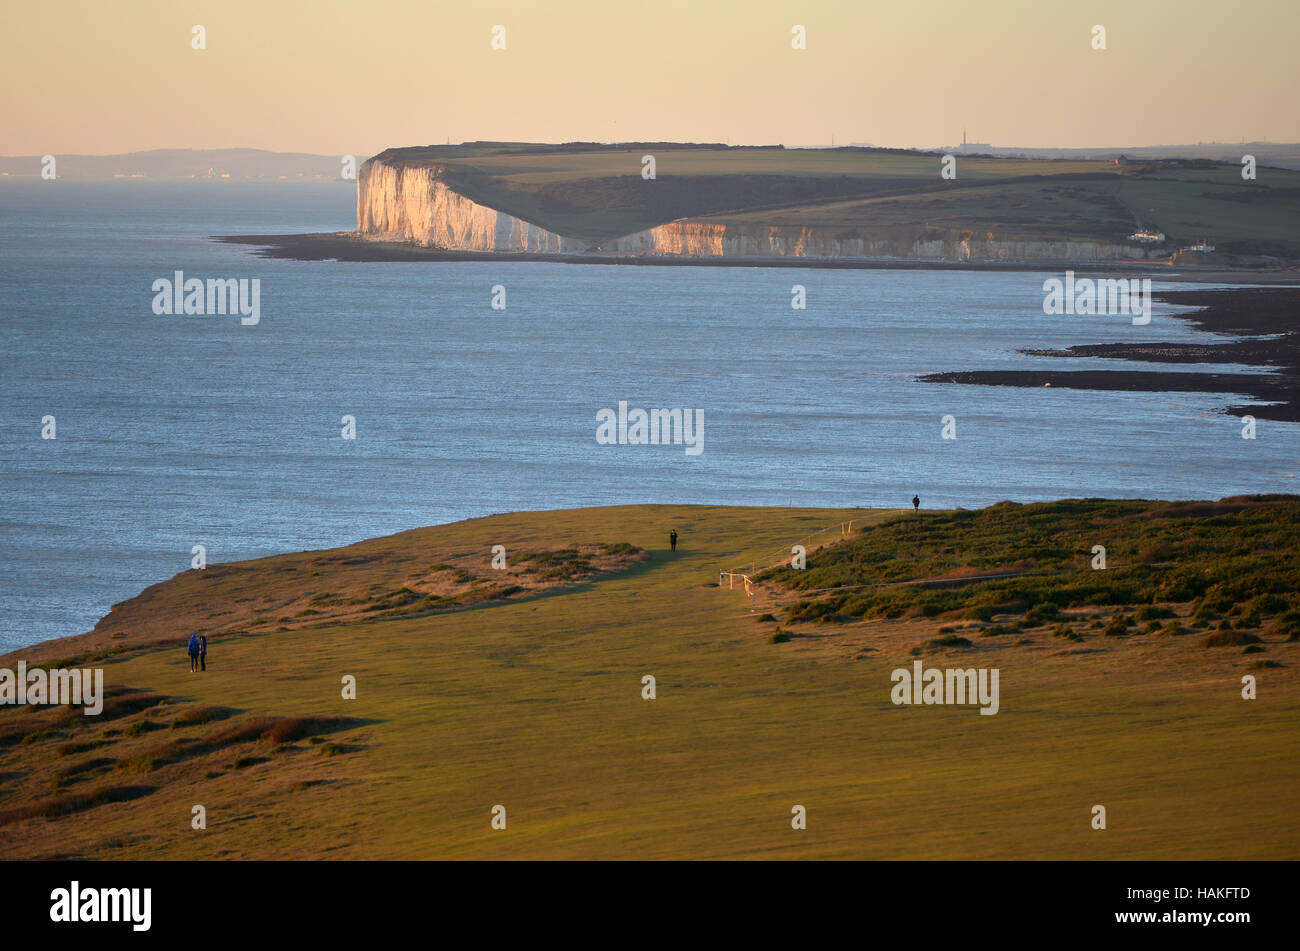 Chalk cliffs of the Seven Sisters where the South Downs meets the sea - Stock Image